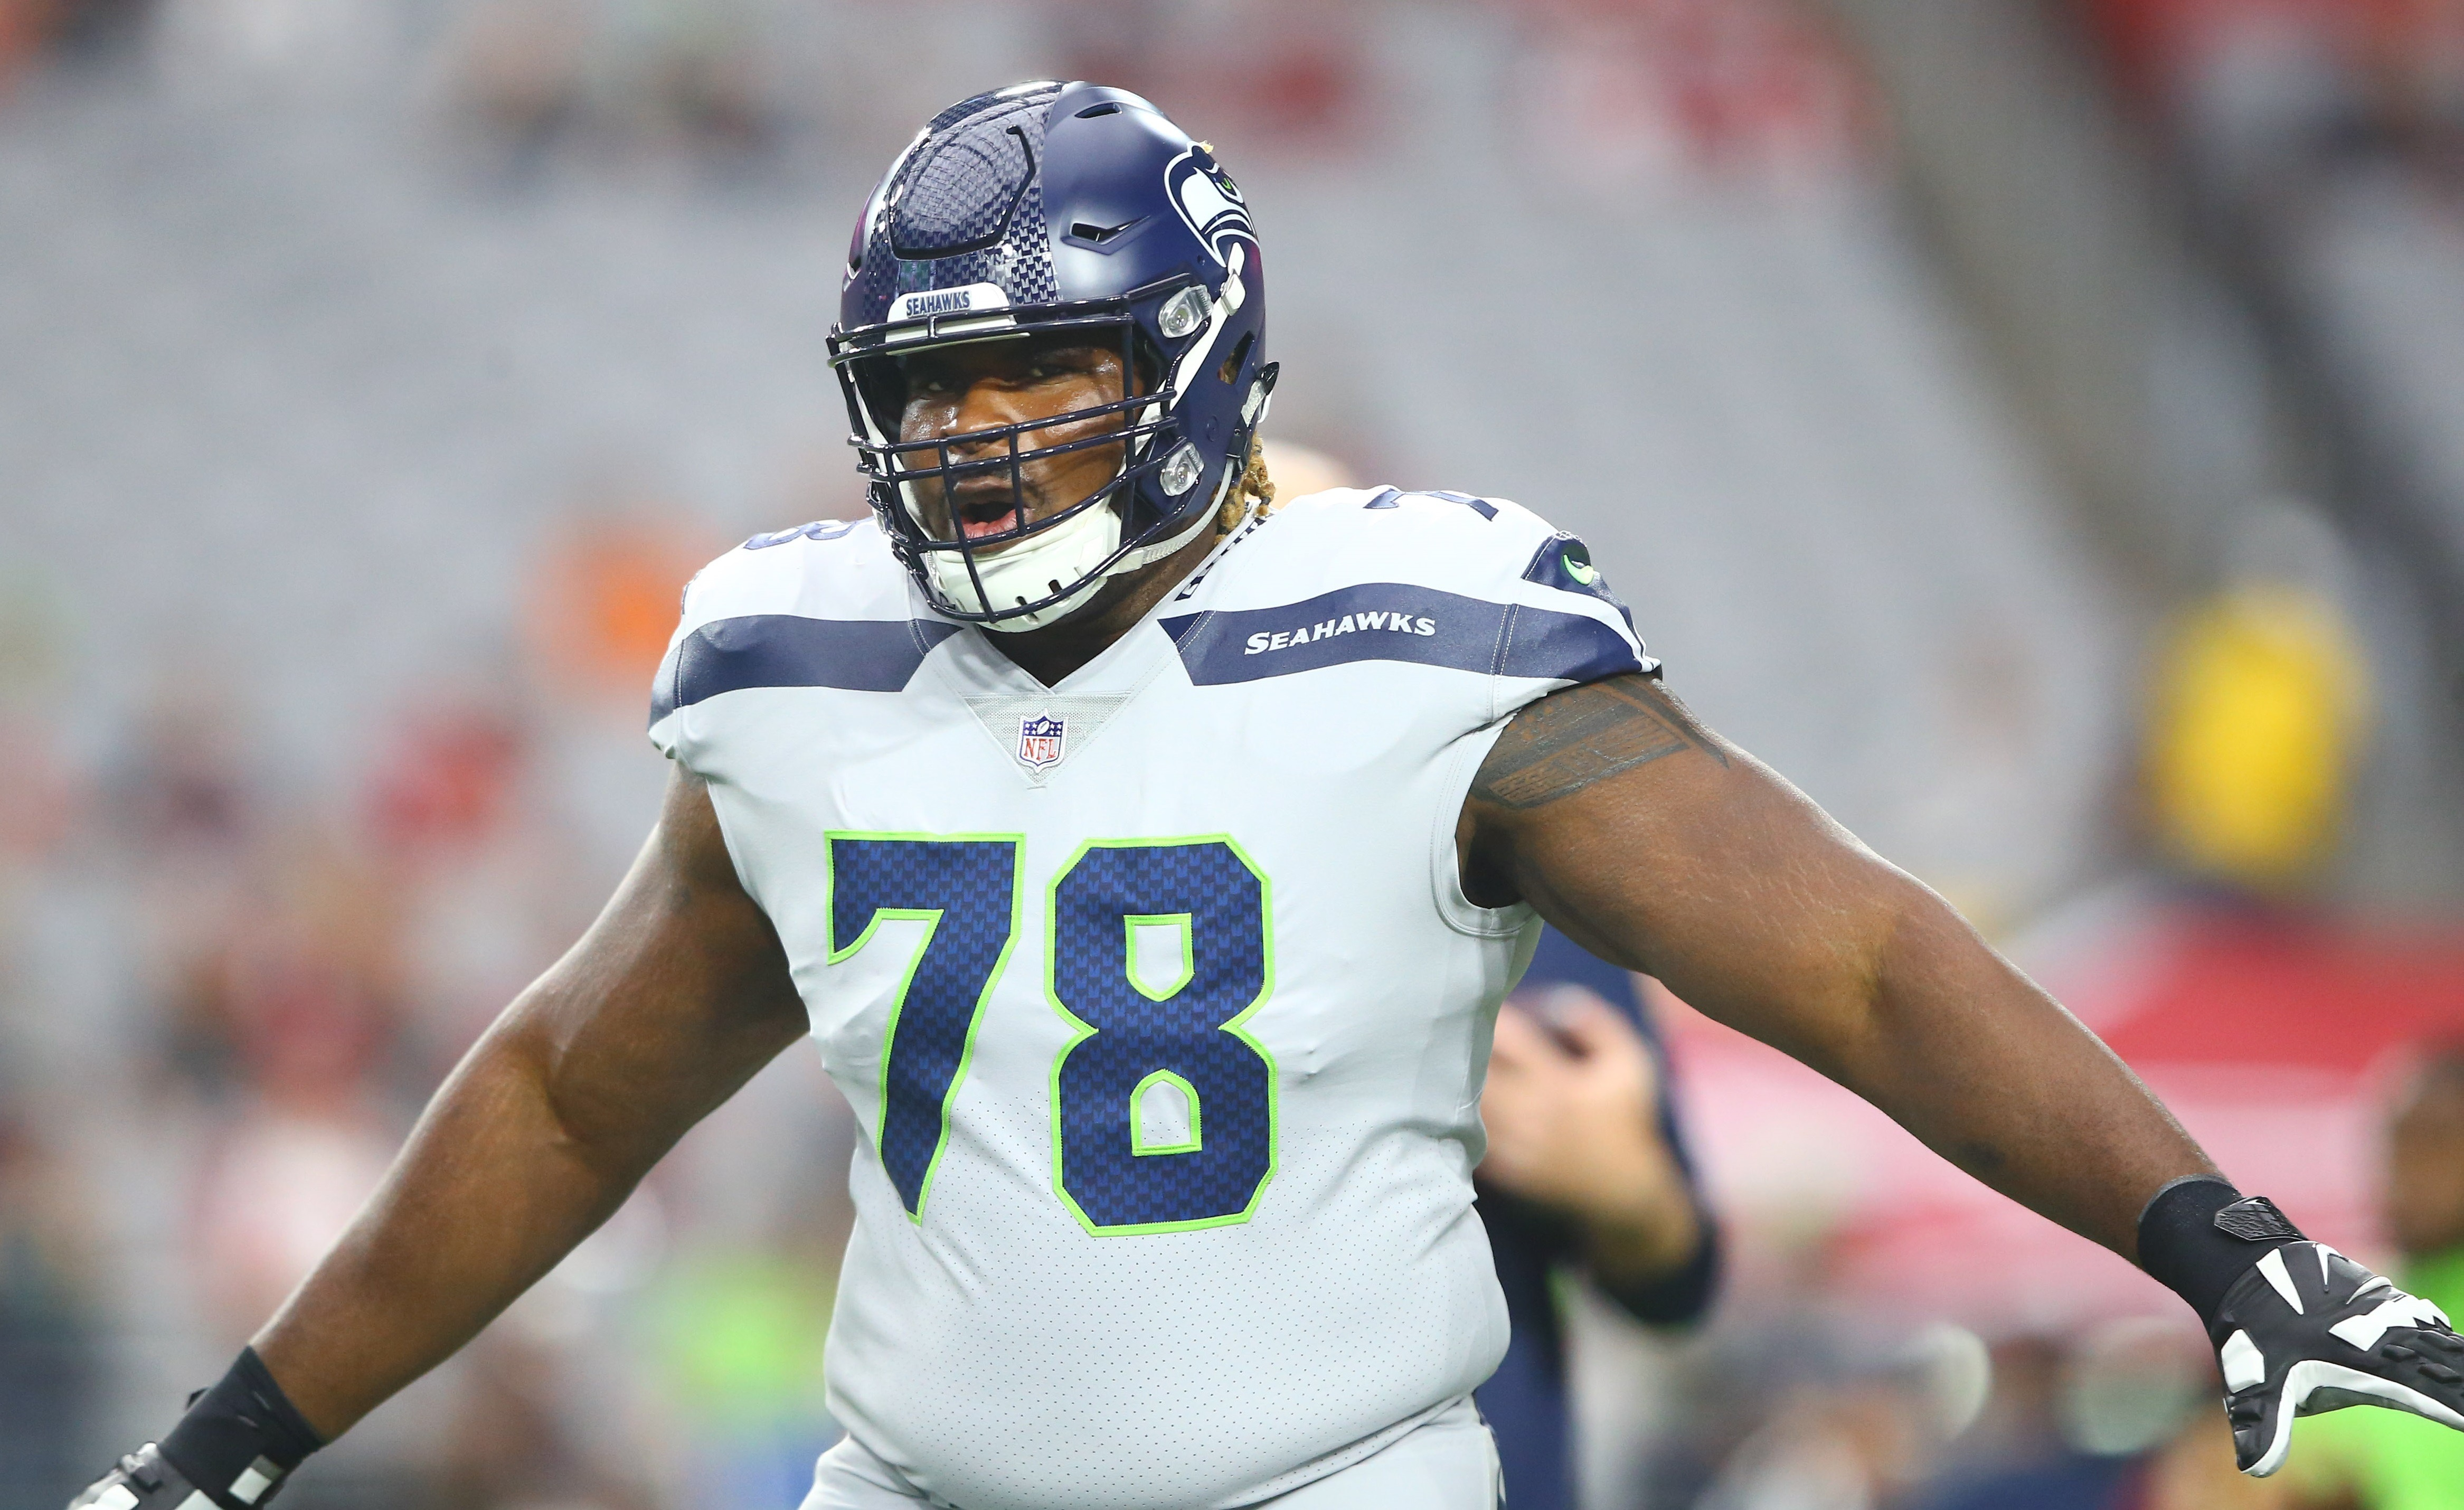 Seahawks Training Camp Primer: Guards/Centers